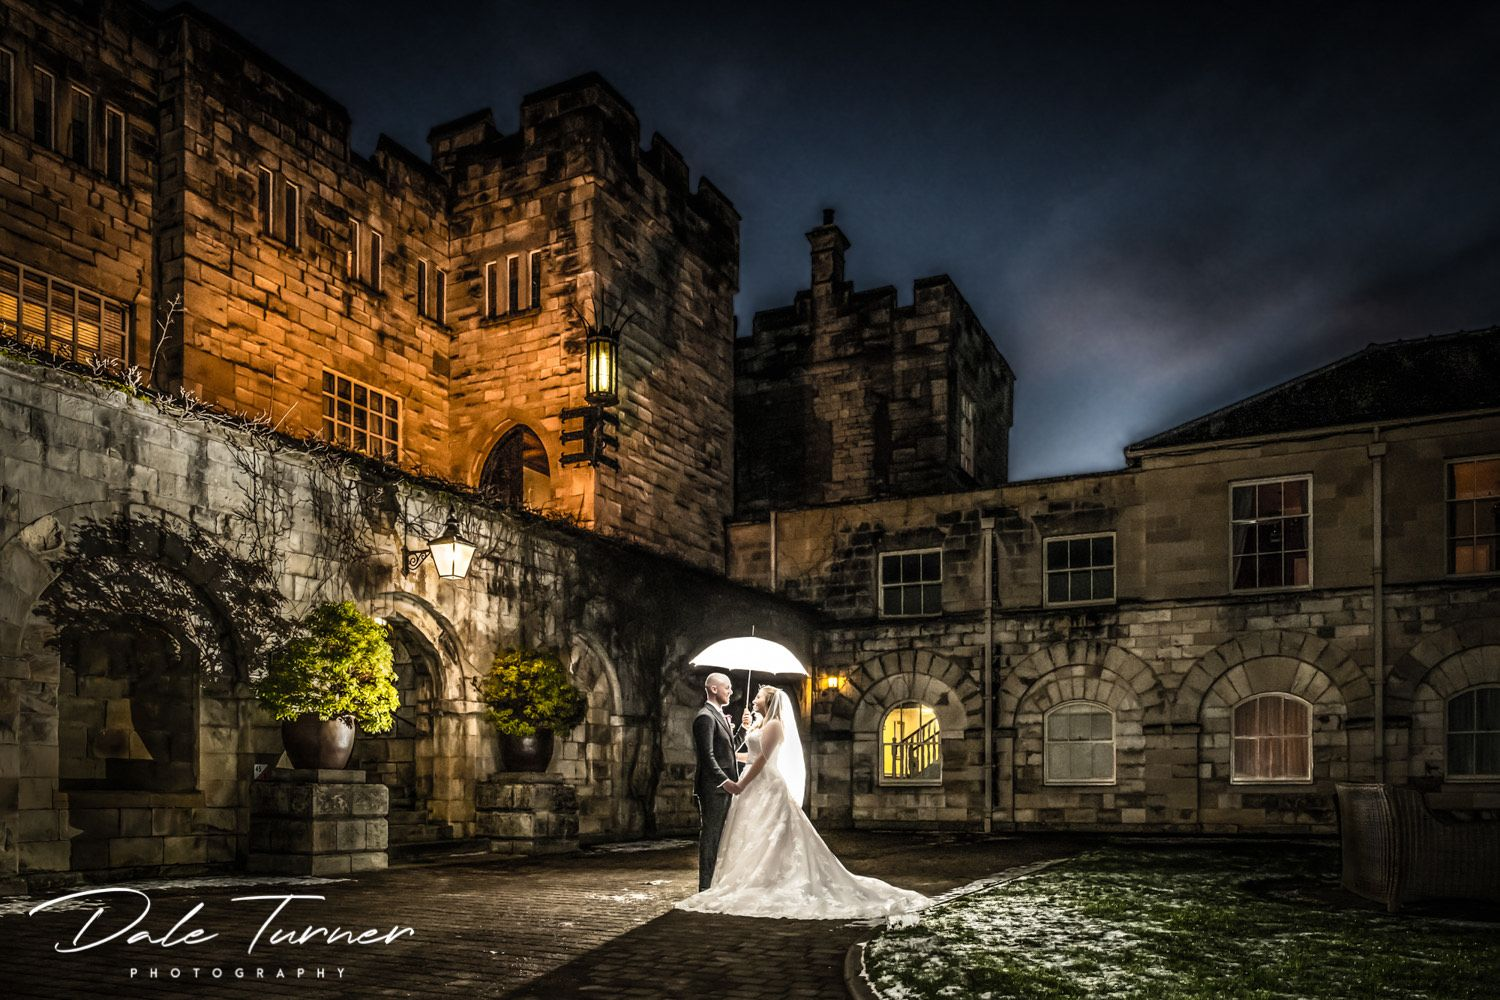 Hazlewood Castle at night with bride and groom holding umbrella